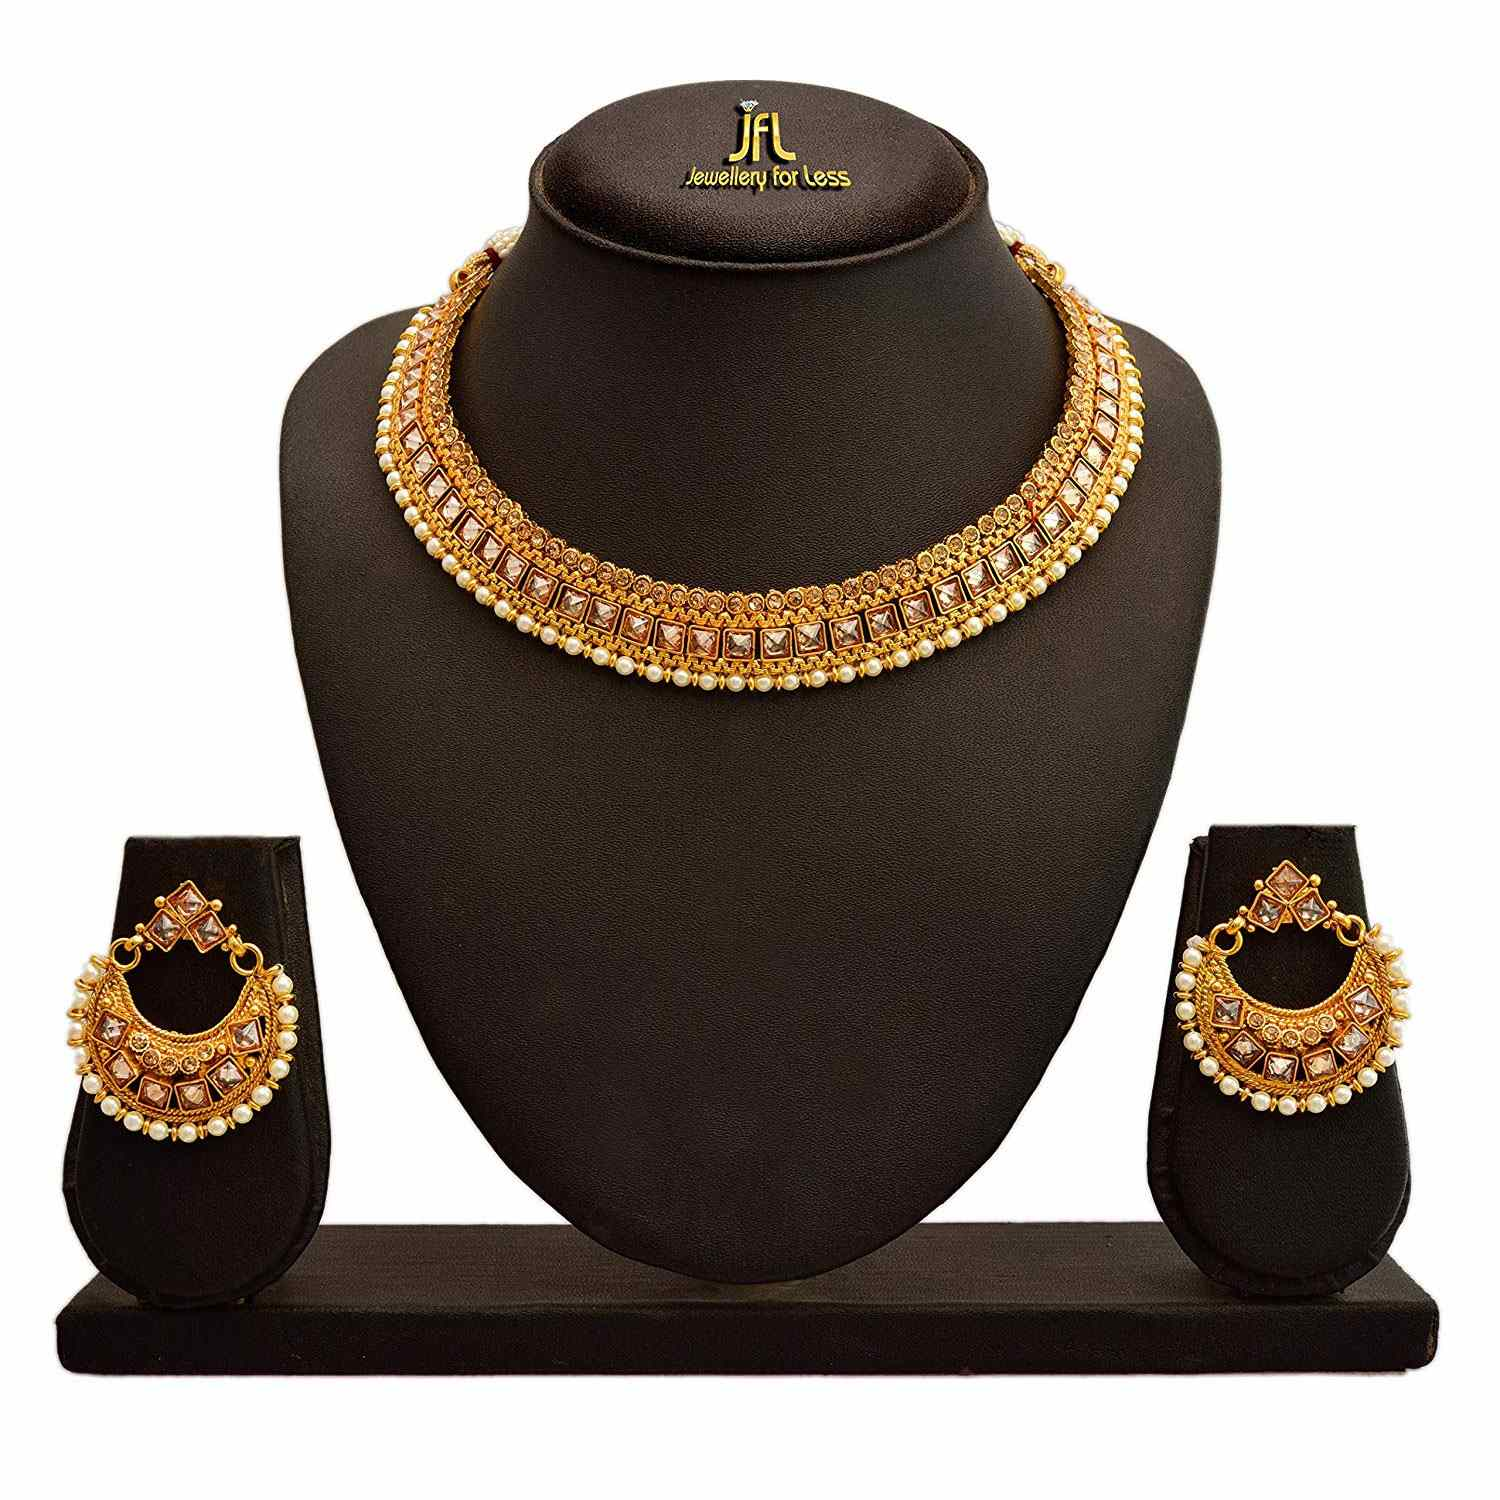 JFL - Traditional Ethnic One Gram Gold Plated LCD Champagne Polki Diamond & Pearl Designer Necklace Set with Earring for Women and Girls.